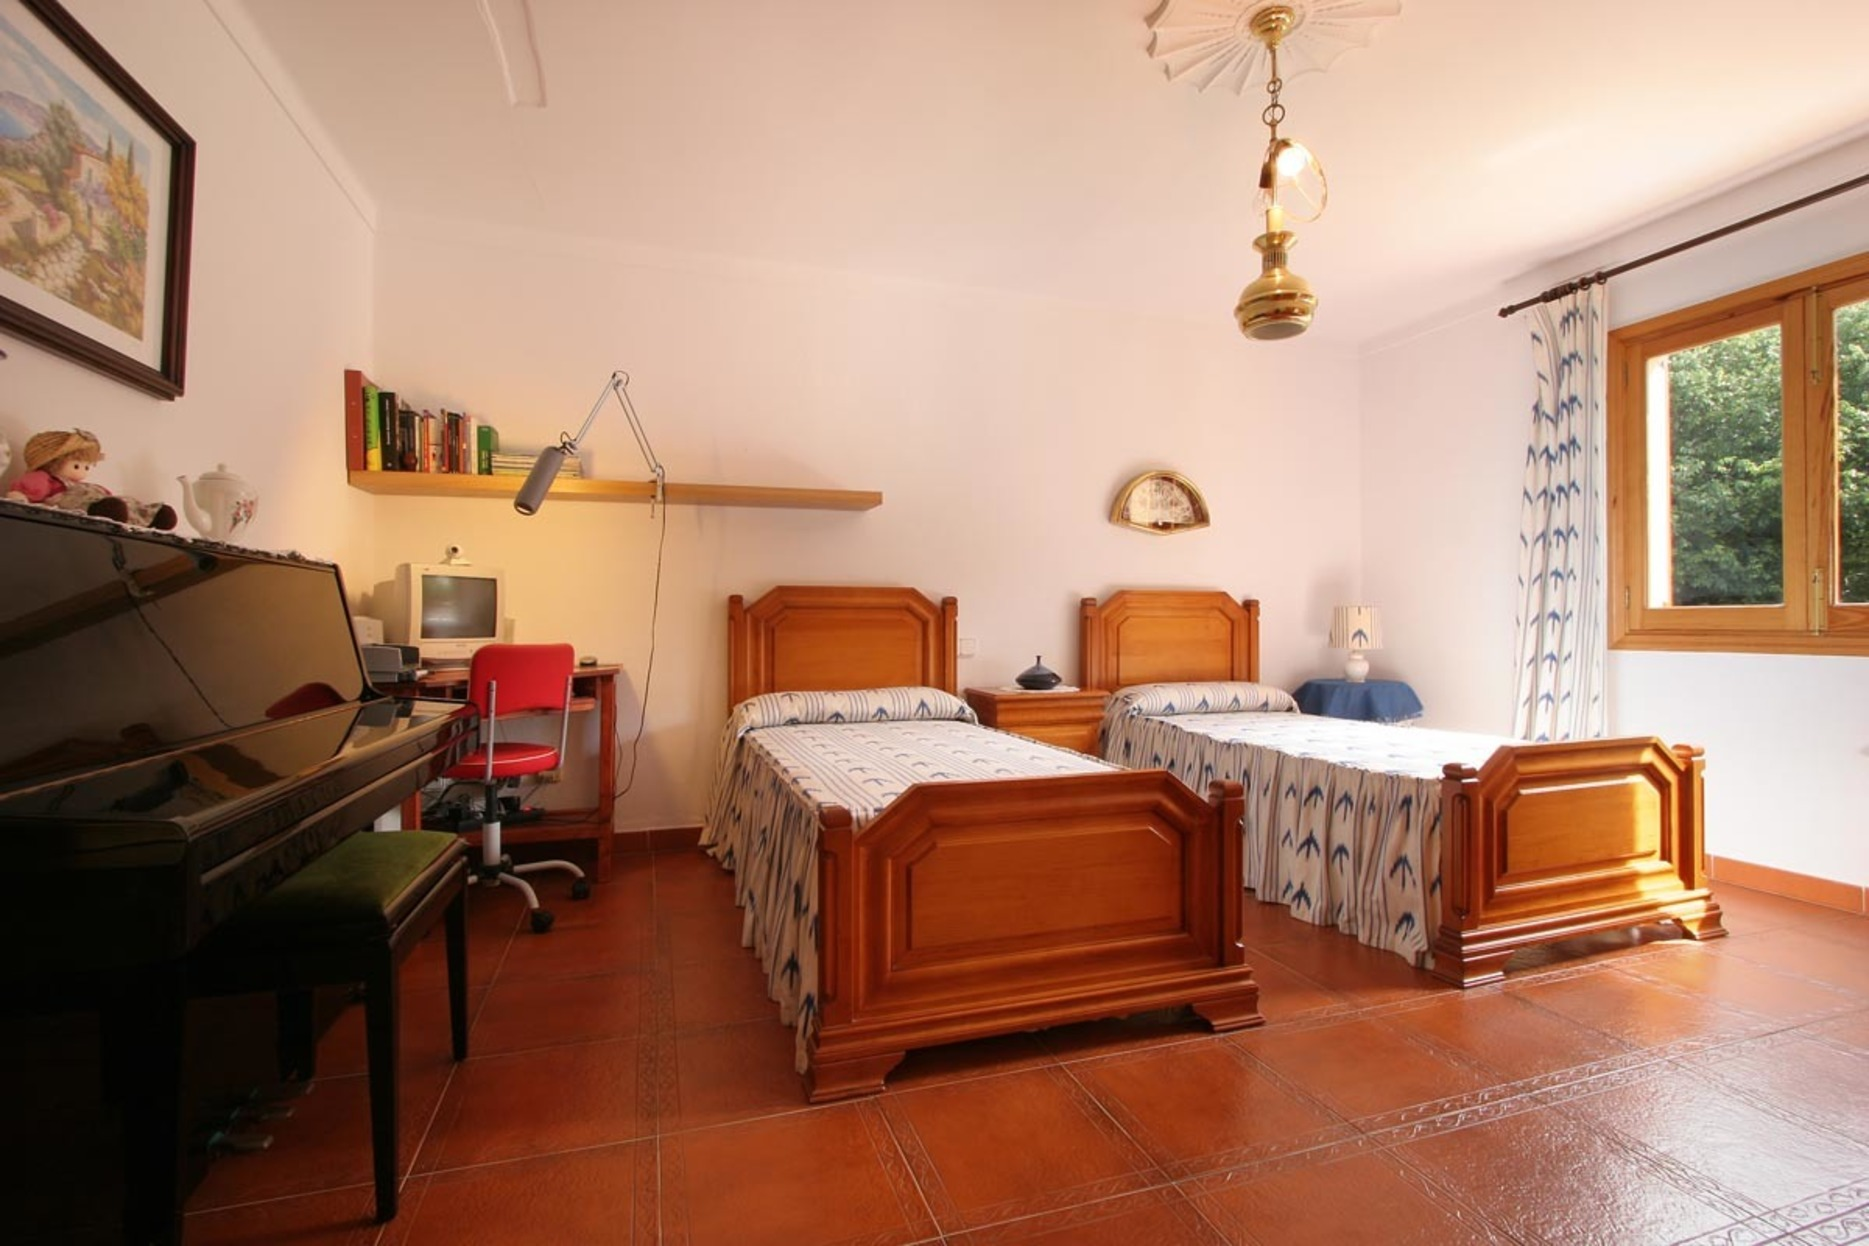 Villa - 3 Bedrooms with Pool - 103124